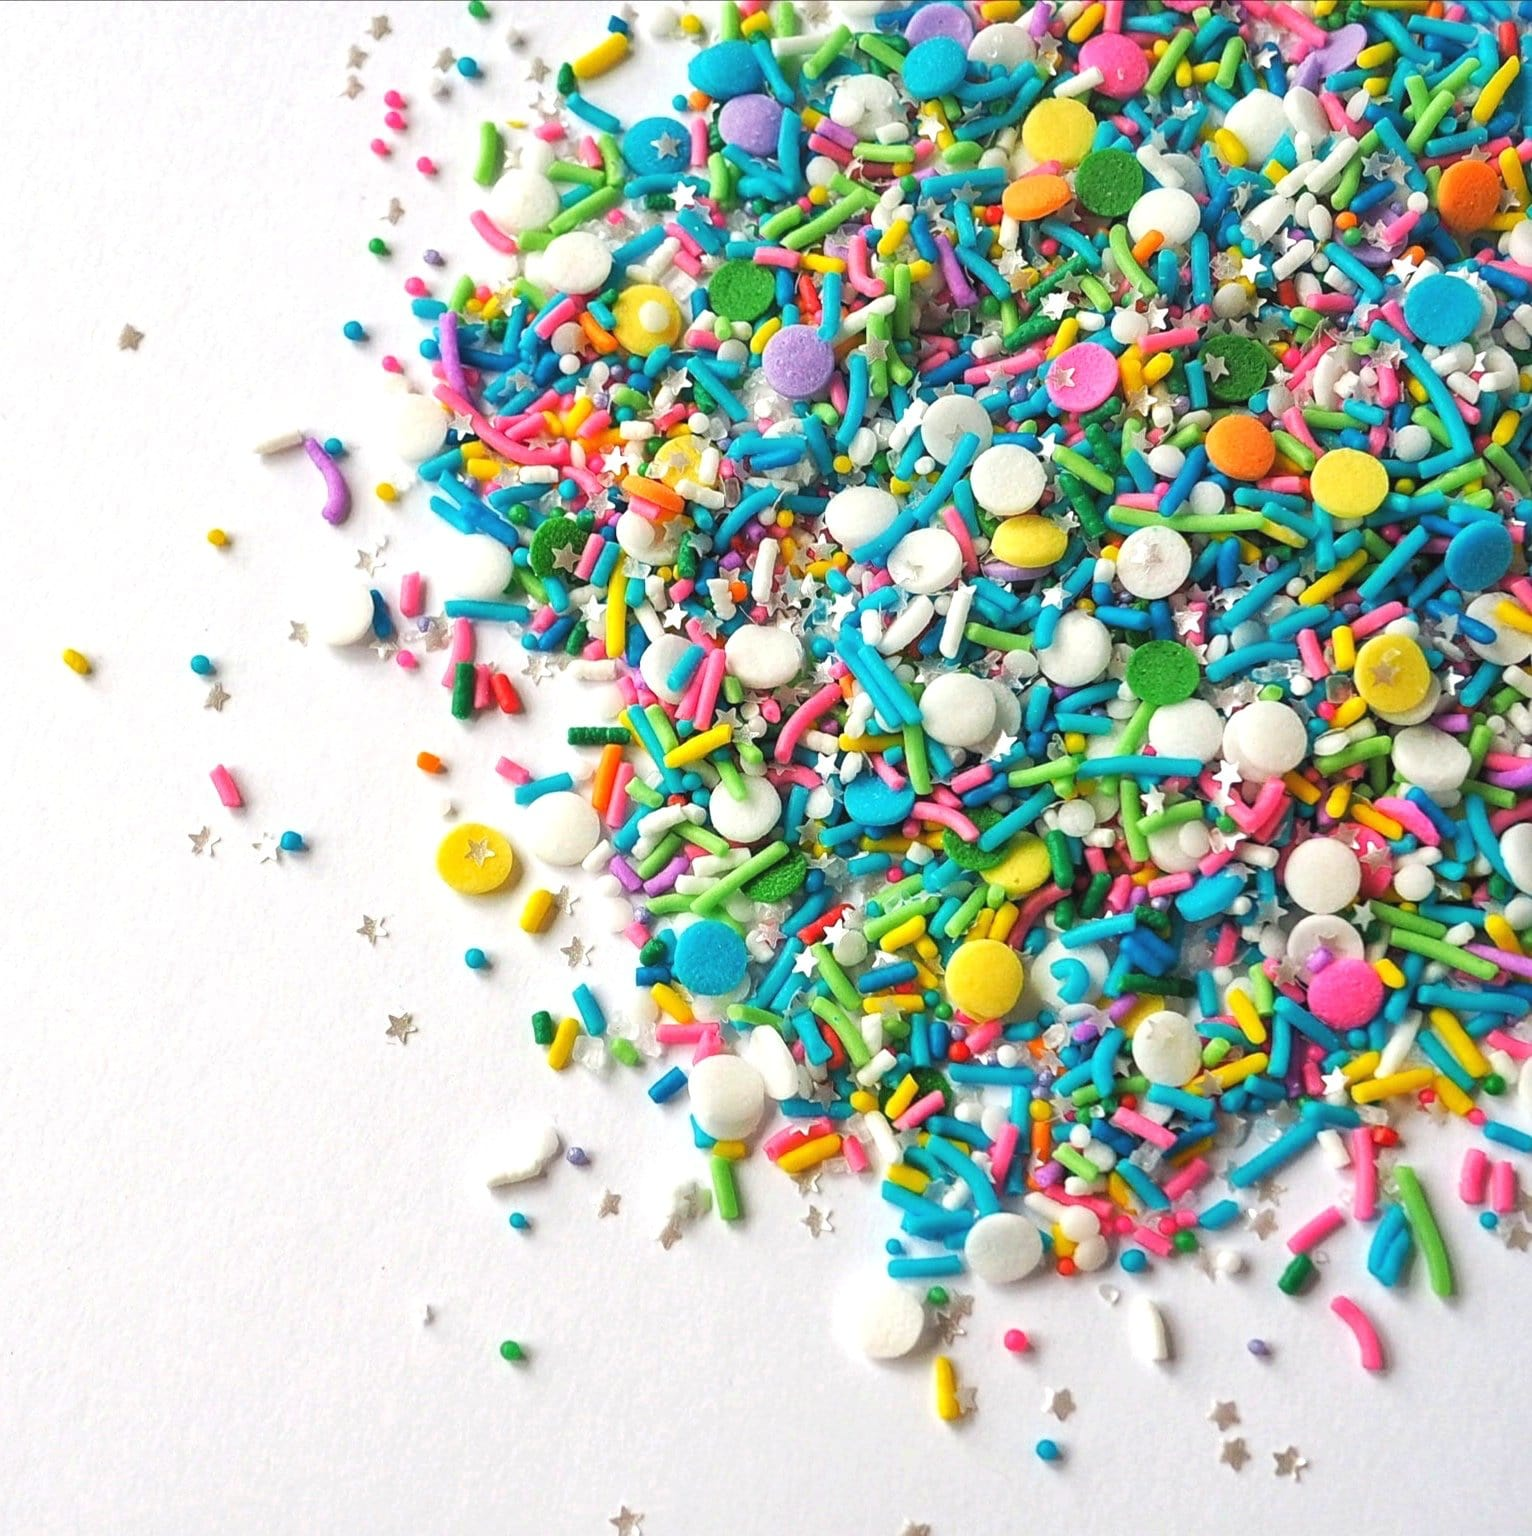 Sugar Lips Party Cannon sprinkle mix, vegan and gluten free rainbow sprinkles